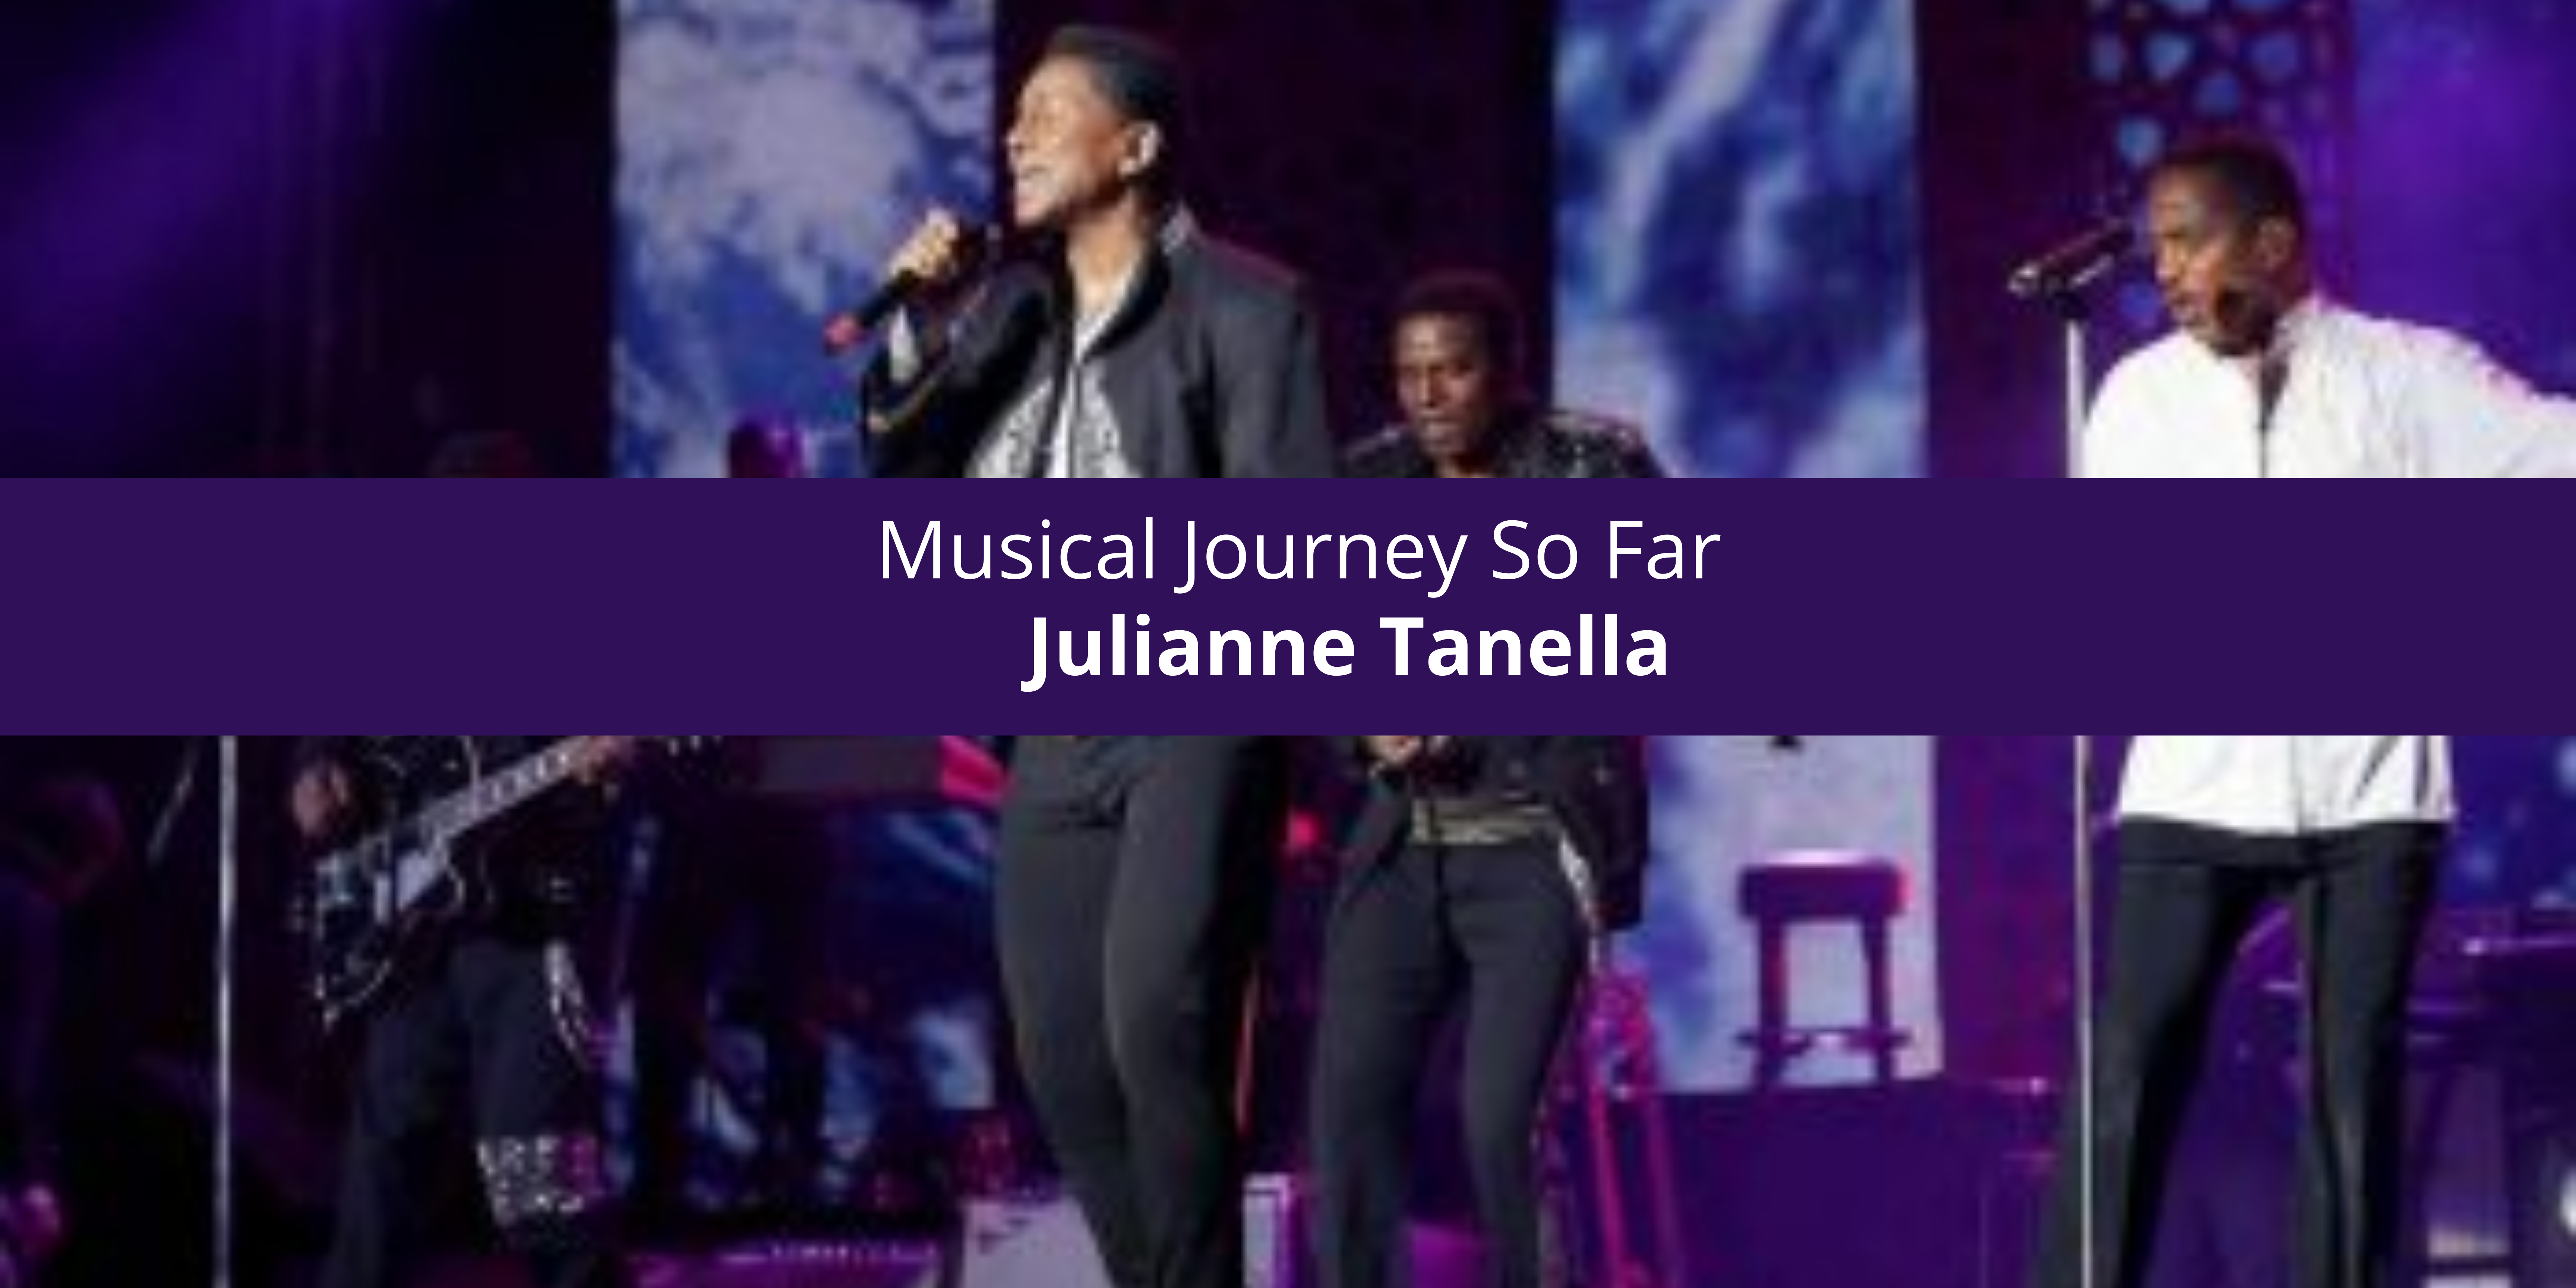 Julianne Tanella's Musical Journey So Far She brings passion and hope to